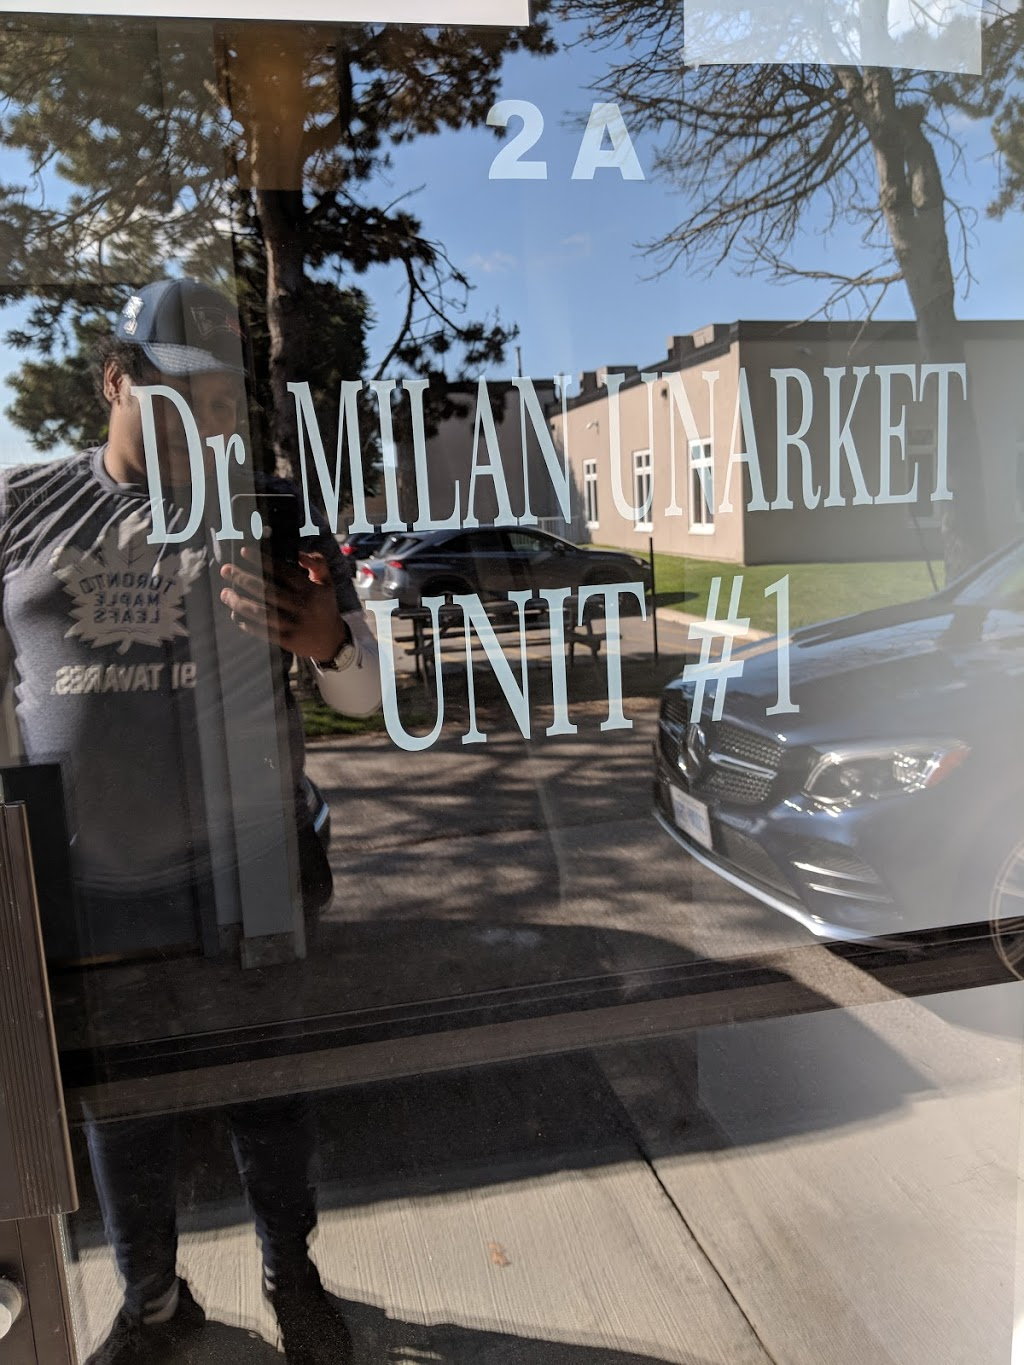 Dr Milan Unarket Physiatry   doctor   12 Upjohn Rd #1, North York, ON M3B 2V9, Canada   6473500412 OR +1 647-350-0412